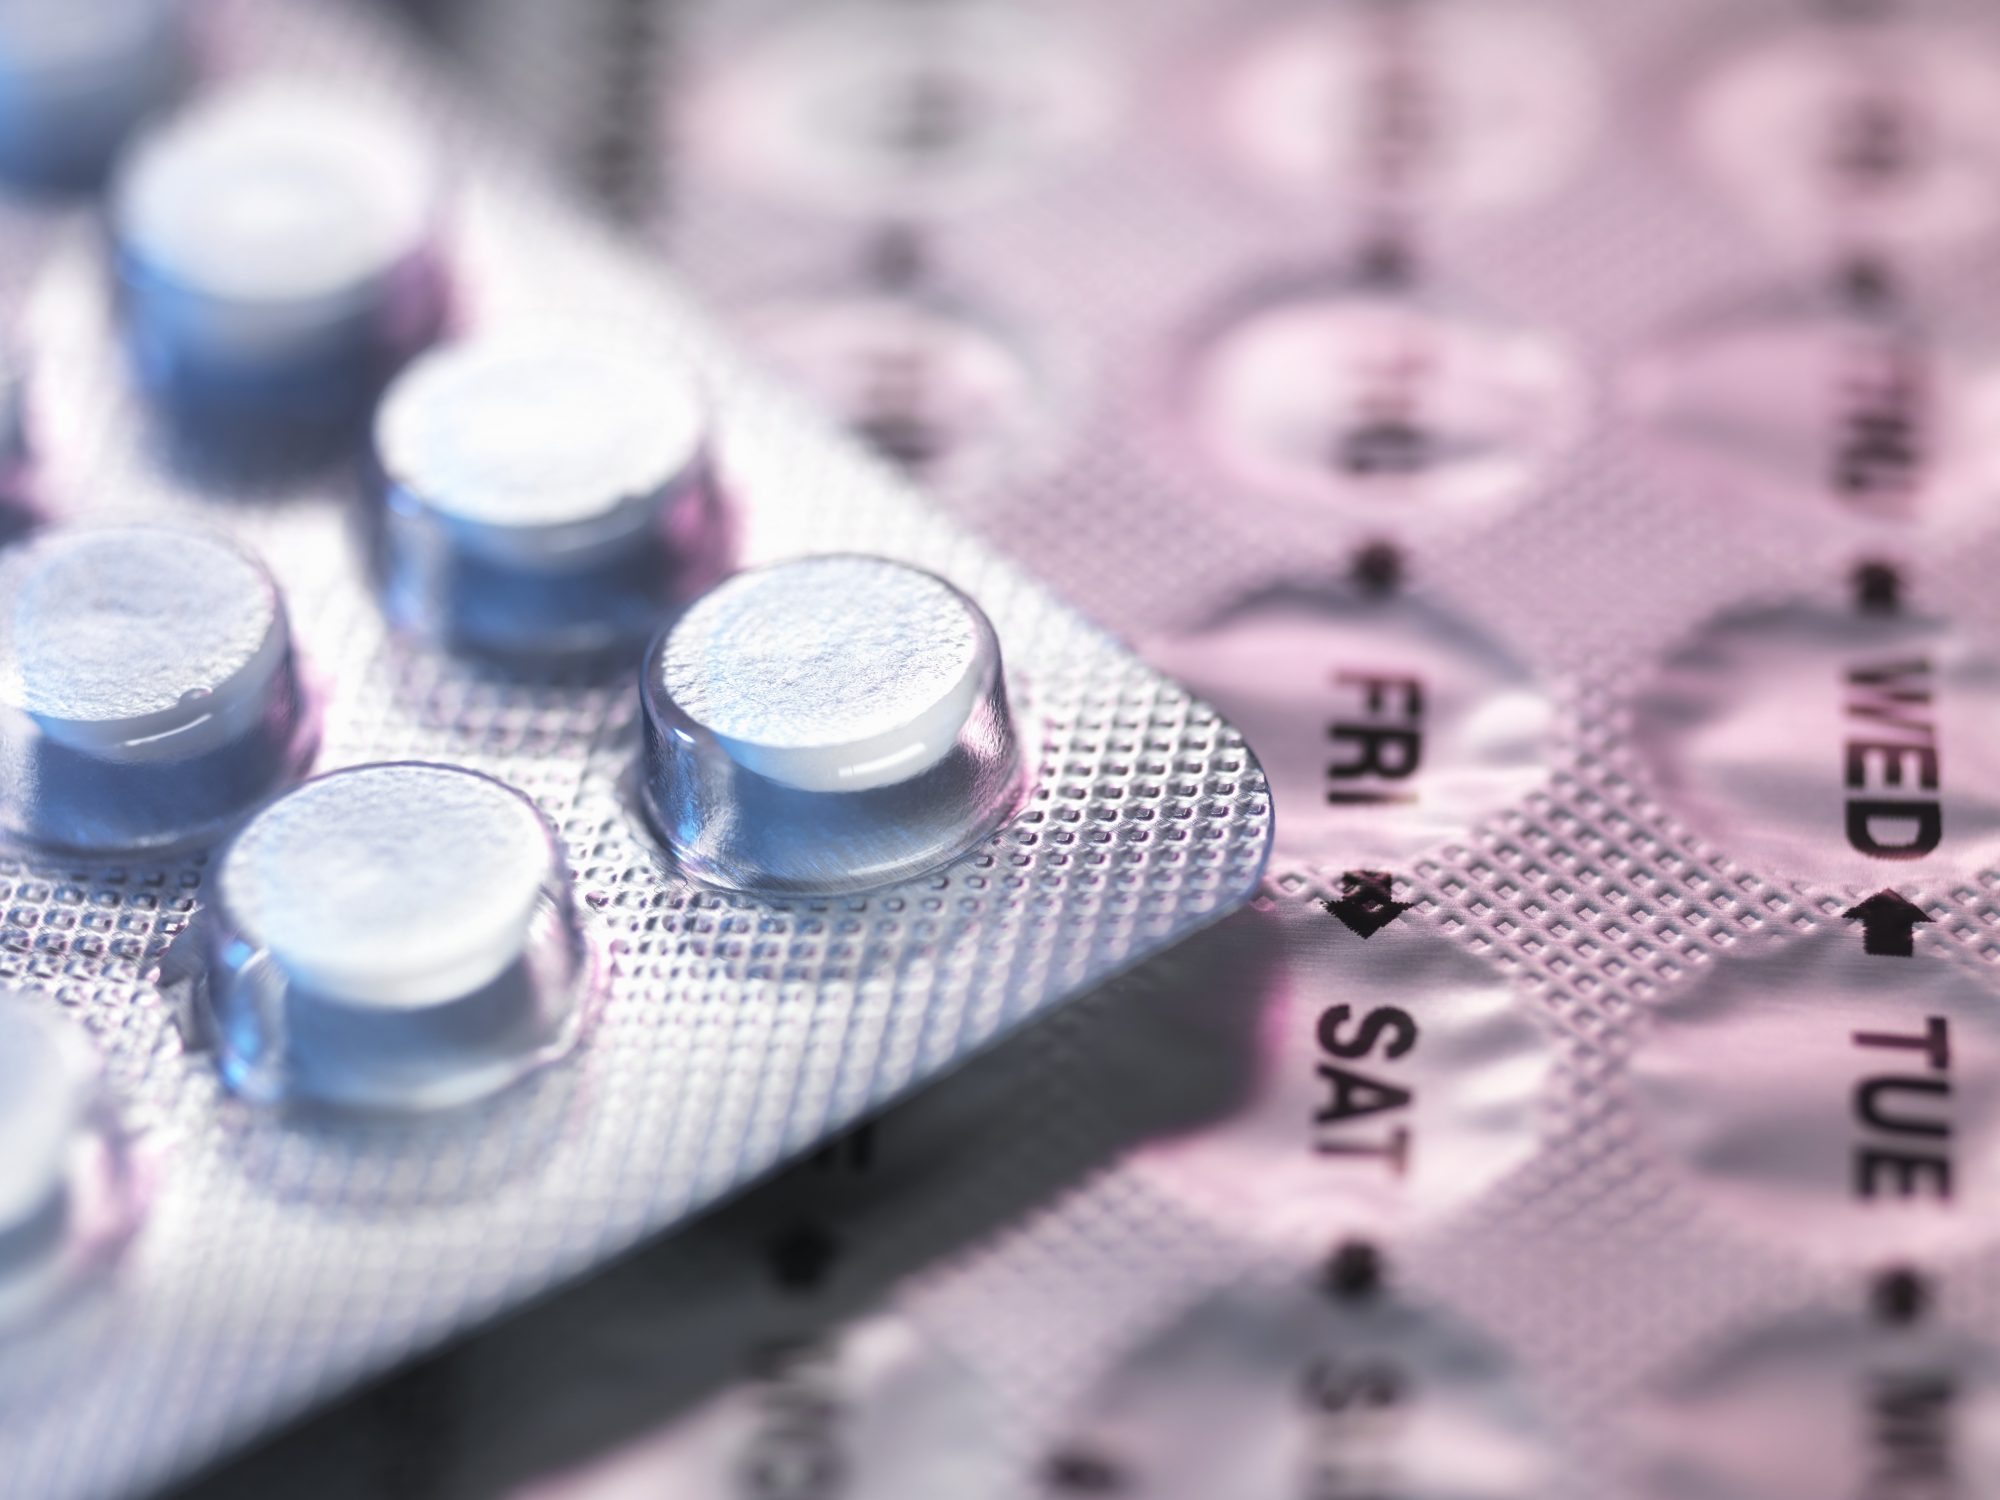 Birth Control Pills May Help Prevent Some Cancers